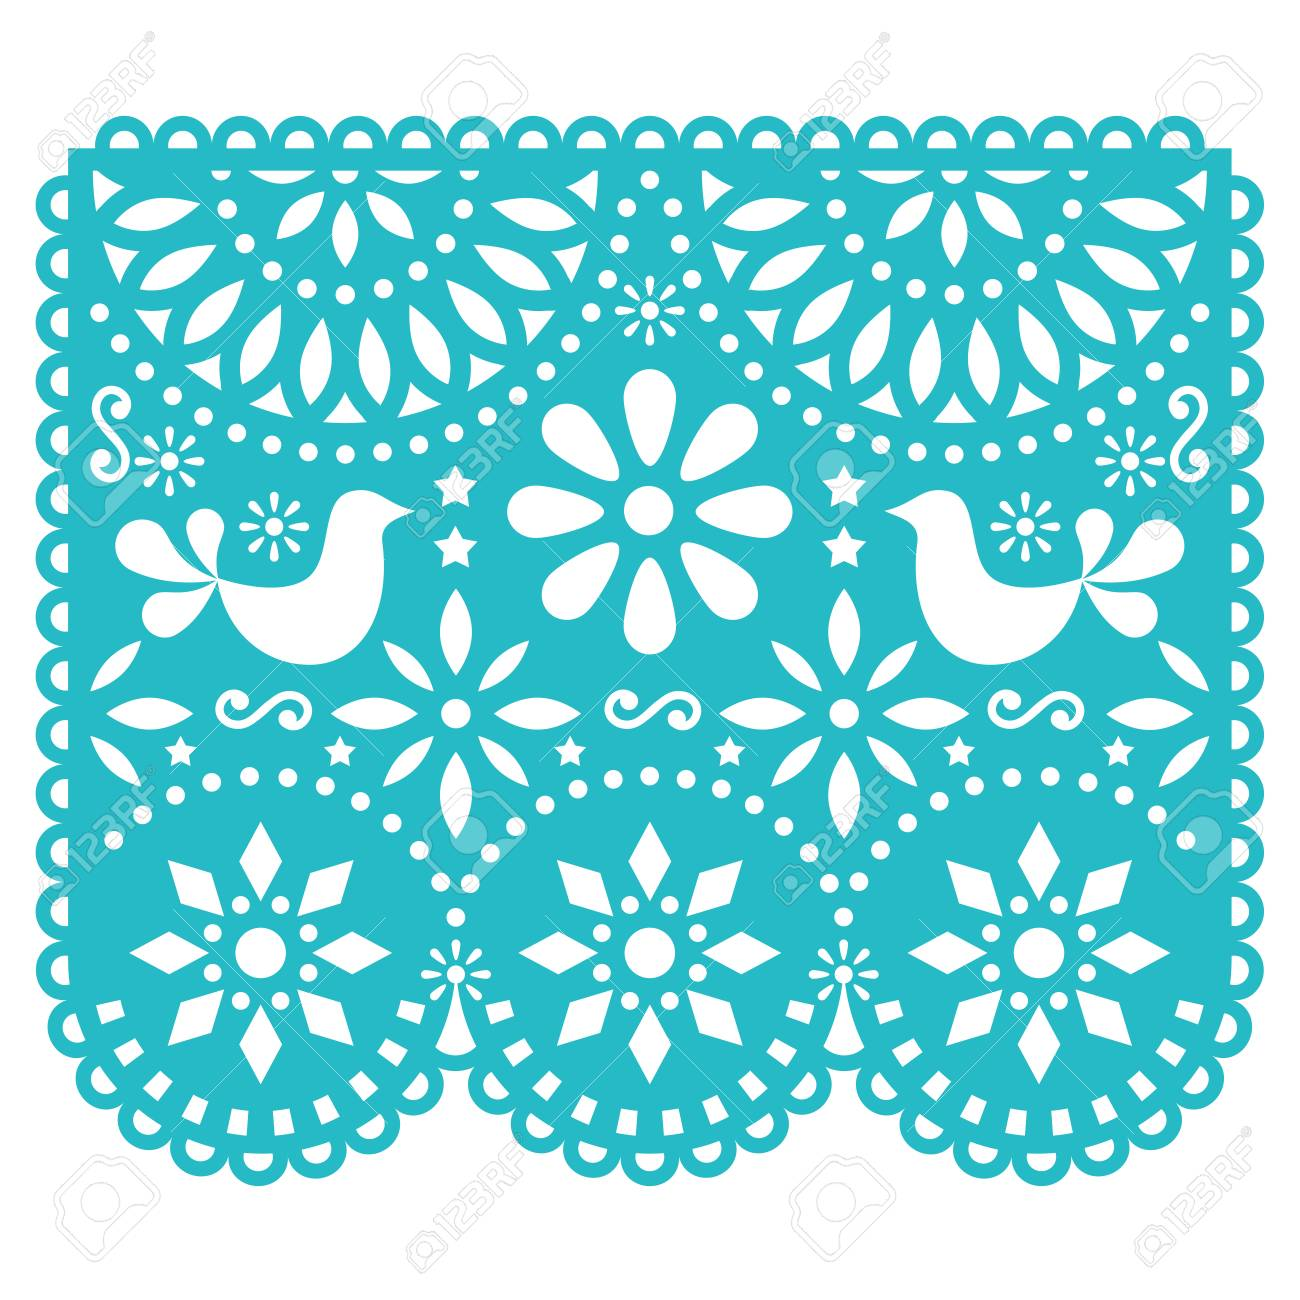 Papel Picado Vector Design Template Mexican Paper Decorations